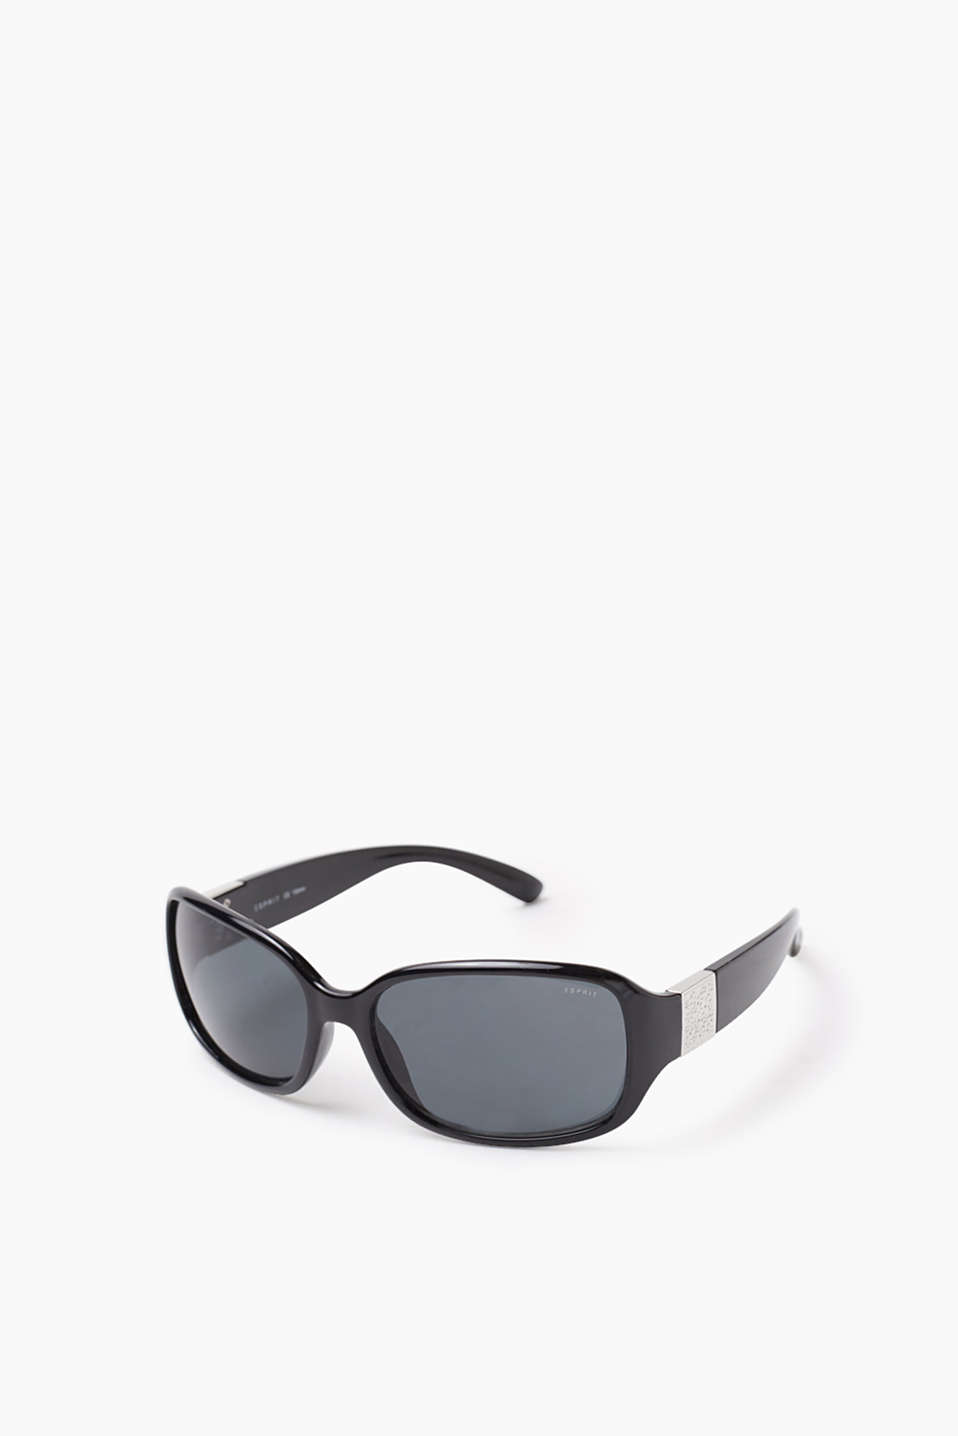 Esprit - Distinctive sunglasses with metal trim